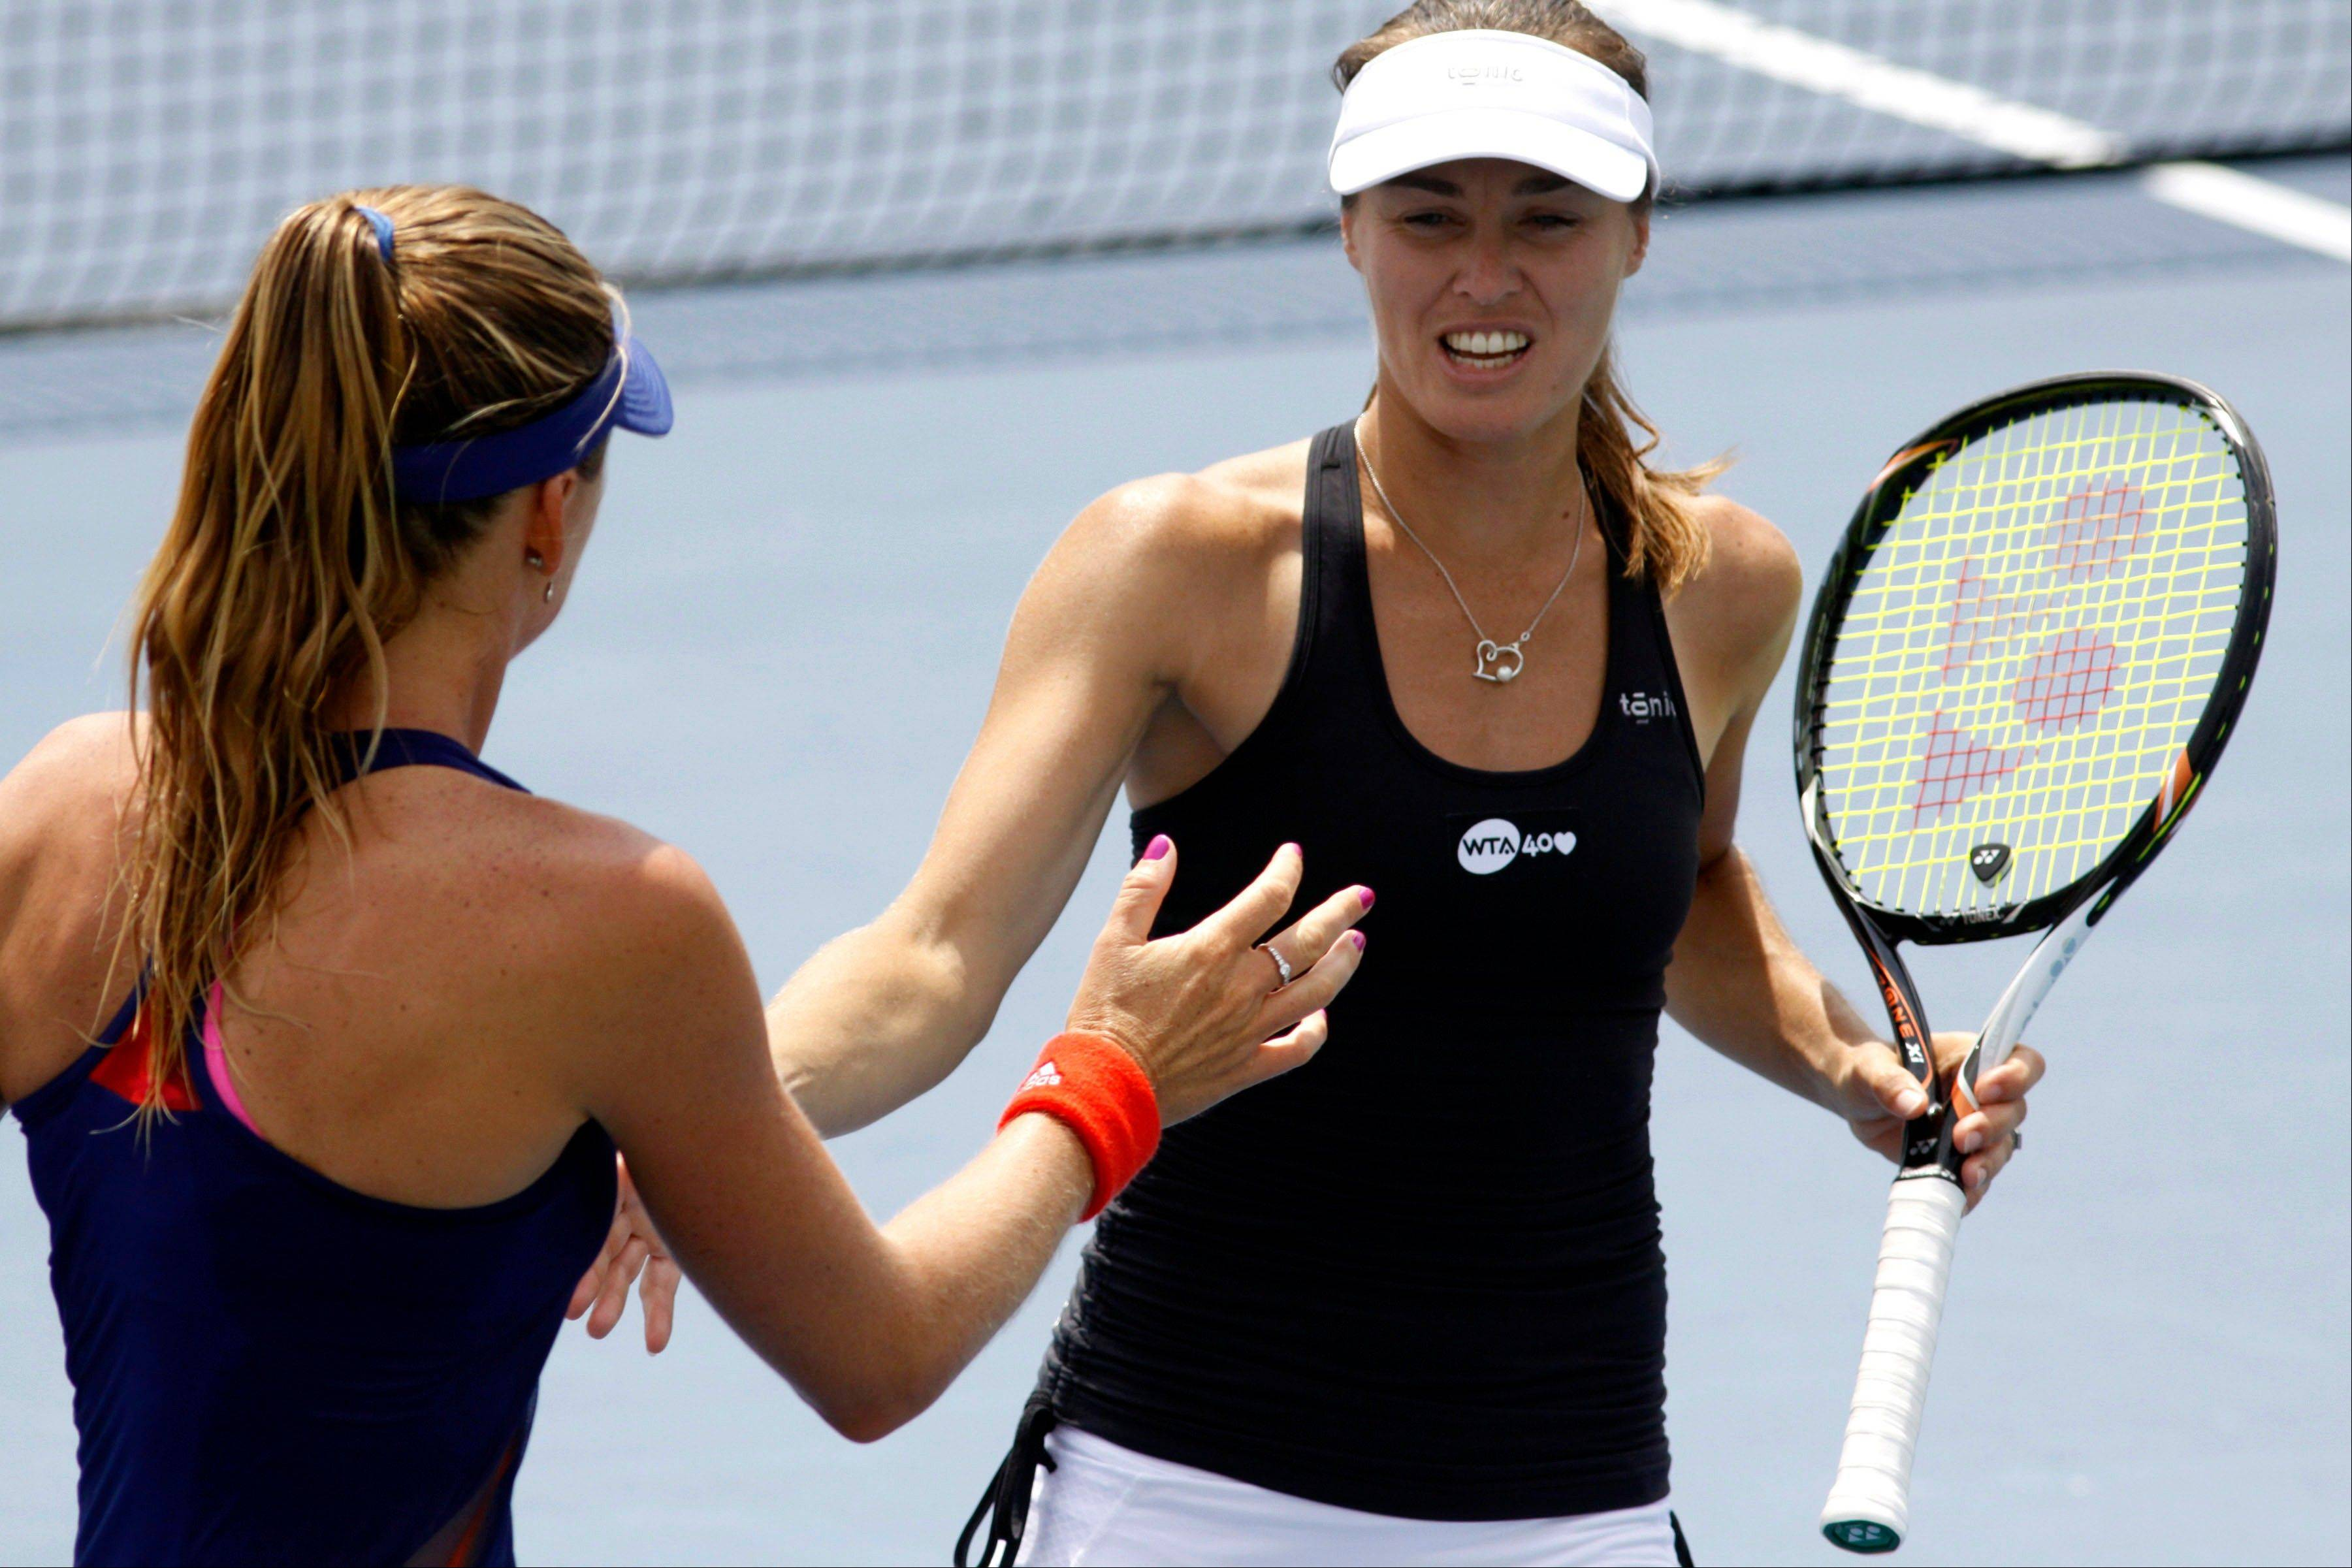 Martina Hingis, of Sweden, right, congratulates teammate Daniela Hantuchova, of Slovakia, after scoring a point against Anabel Medina Garrigues, of Spain, and Flavia Pennetta, of Italy, during a doubles match at the Western & Southern Open tennis tournament on Monday, Aug. 12, 2013, in Mason, Ohio.